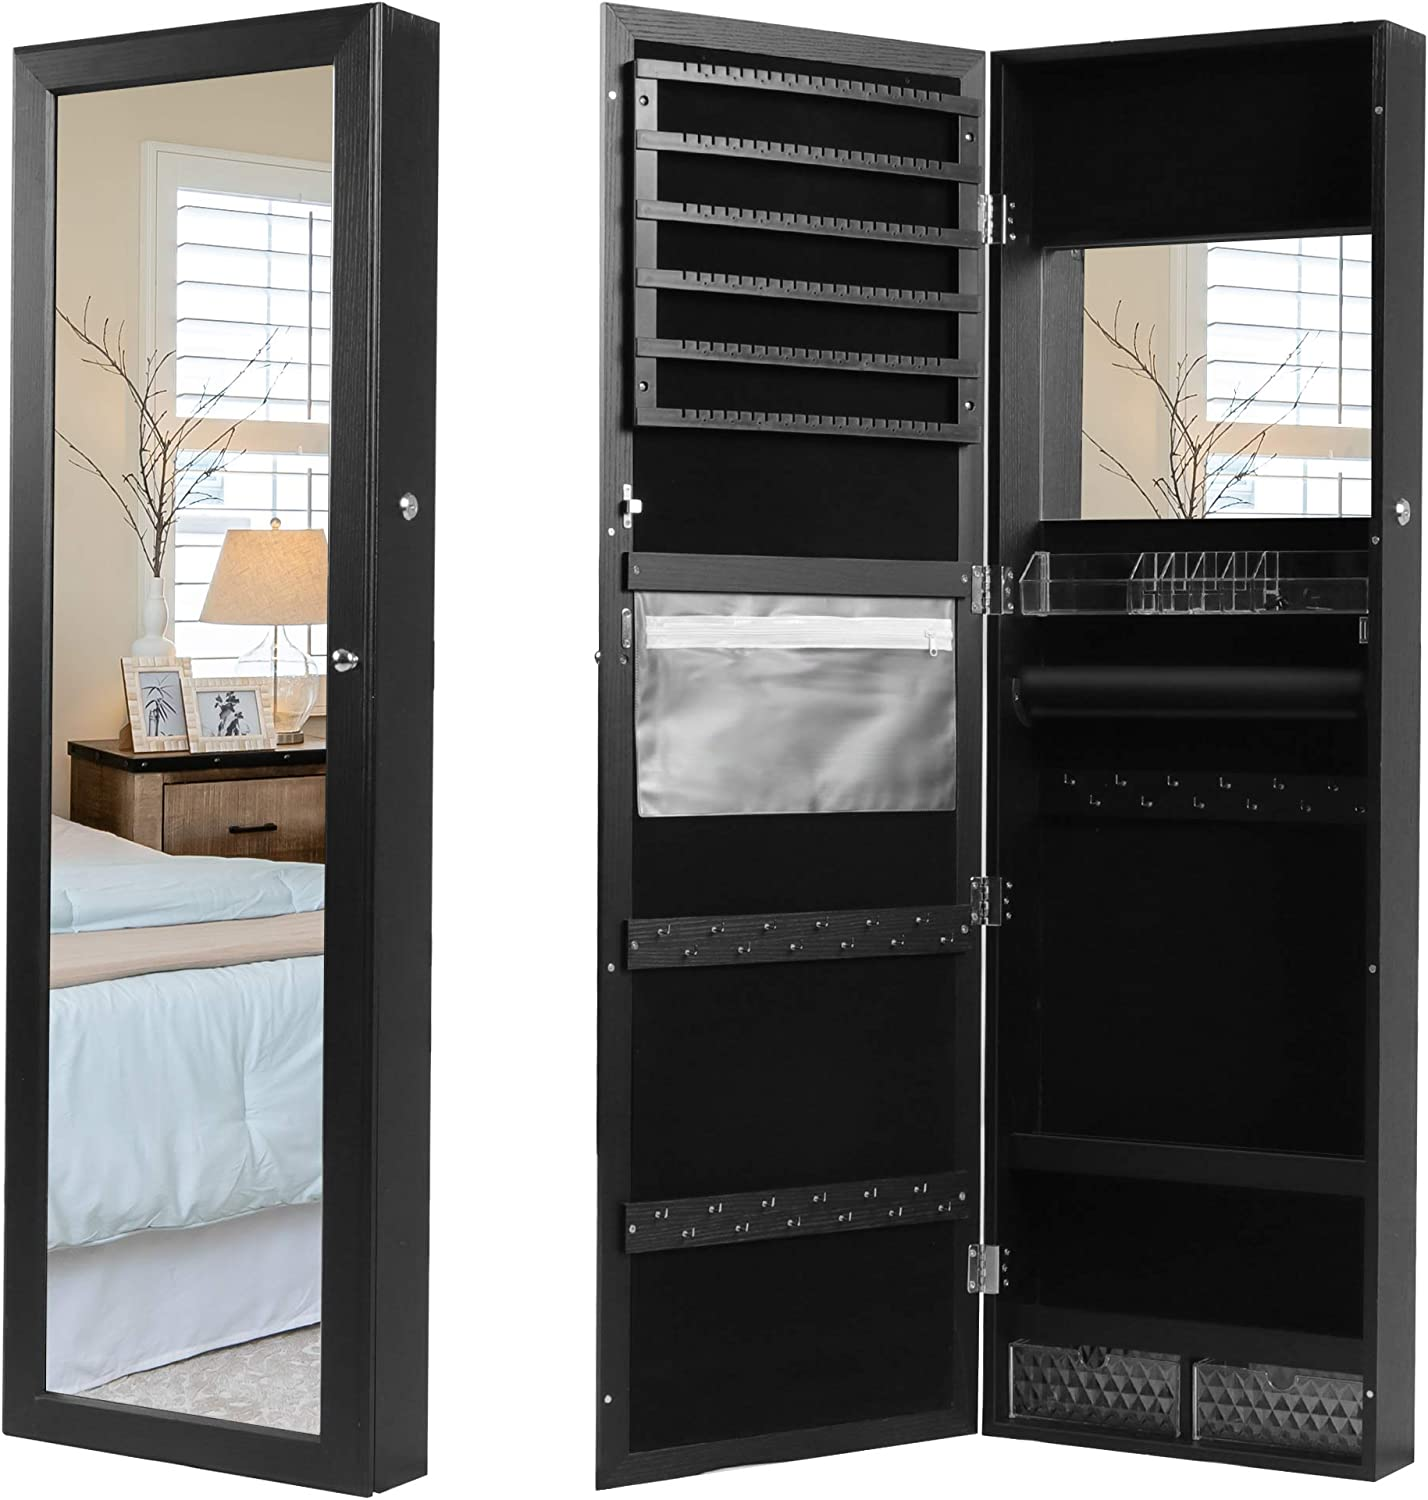 """Lavievert Jewelry Armoire Lockable Jewelry Cabinet 47.2"""" H Wall/Door Mounted Jewelry Display Organizer with Full Length Mirror, Interior Makeup Mirror, Drawers, Spacious Storage - Black: Home Improvement"""